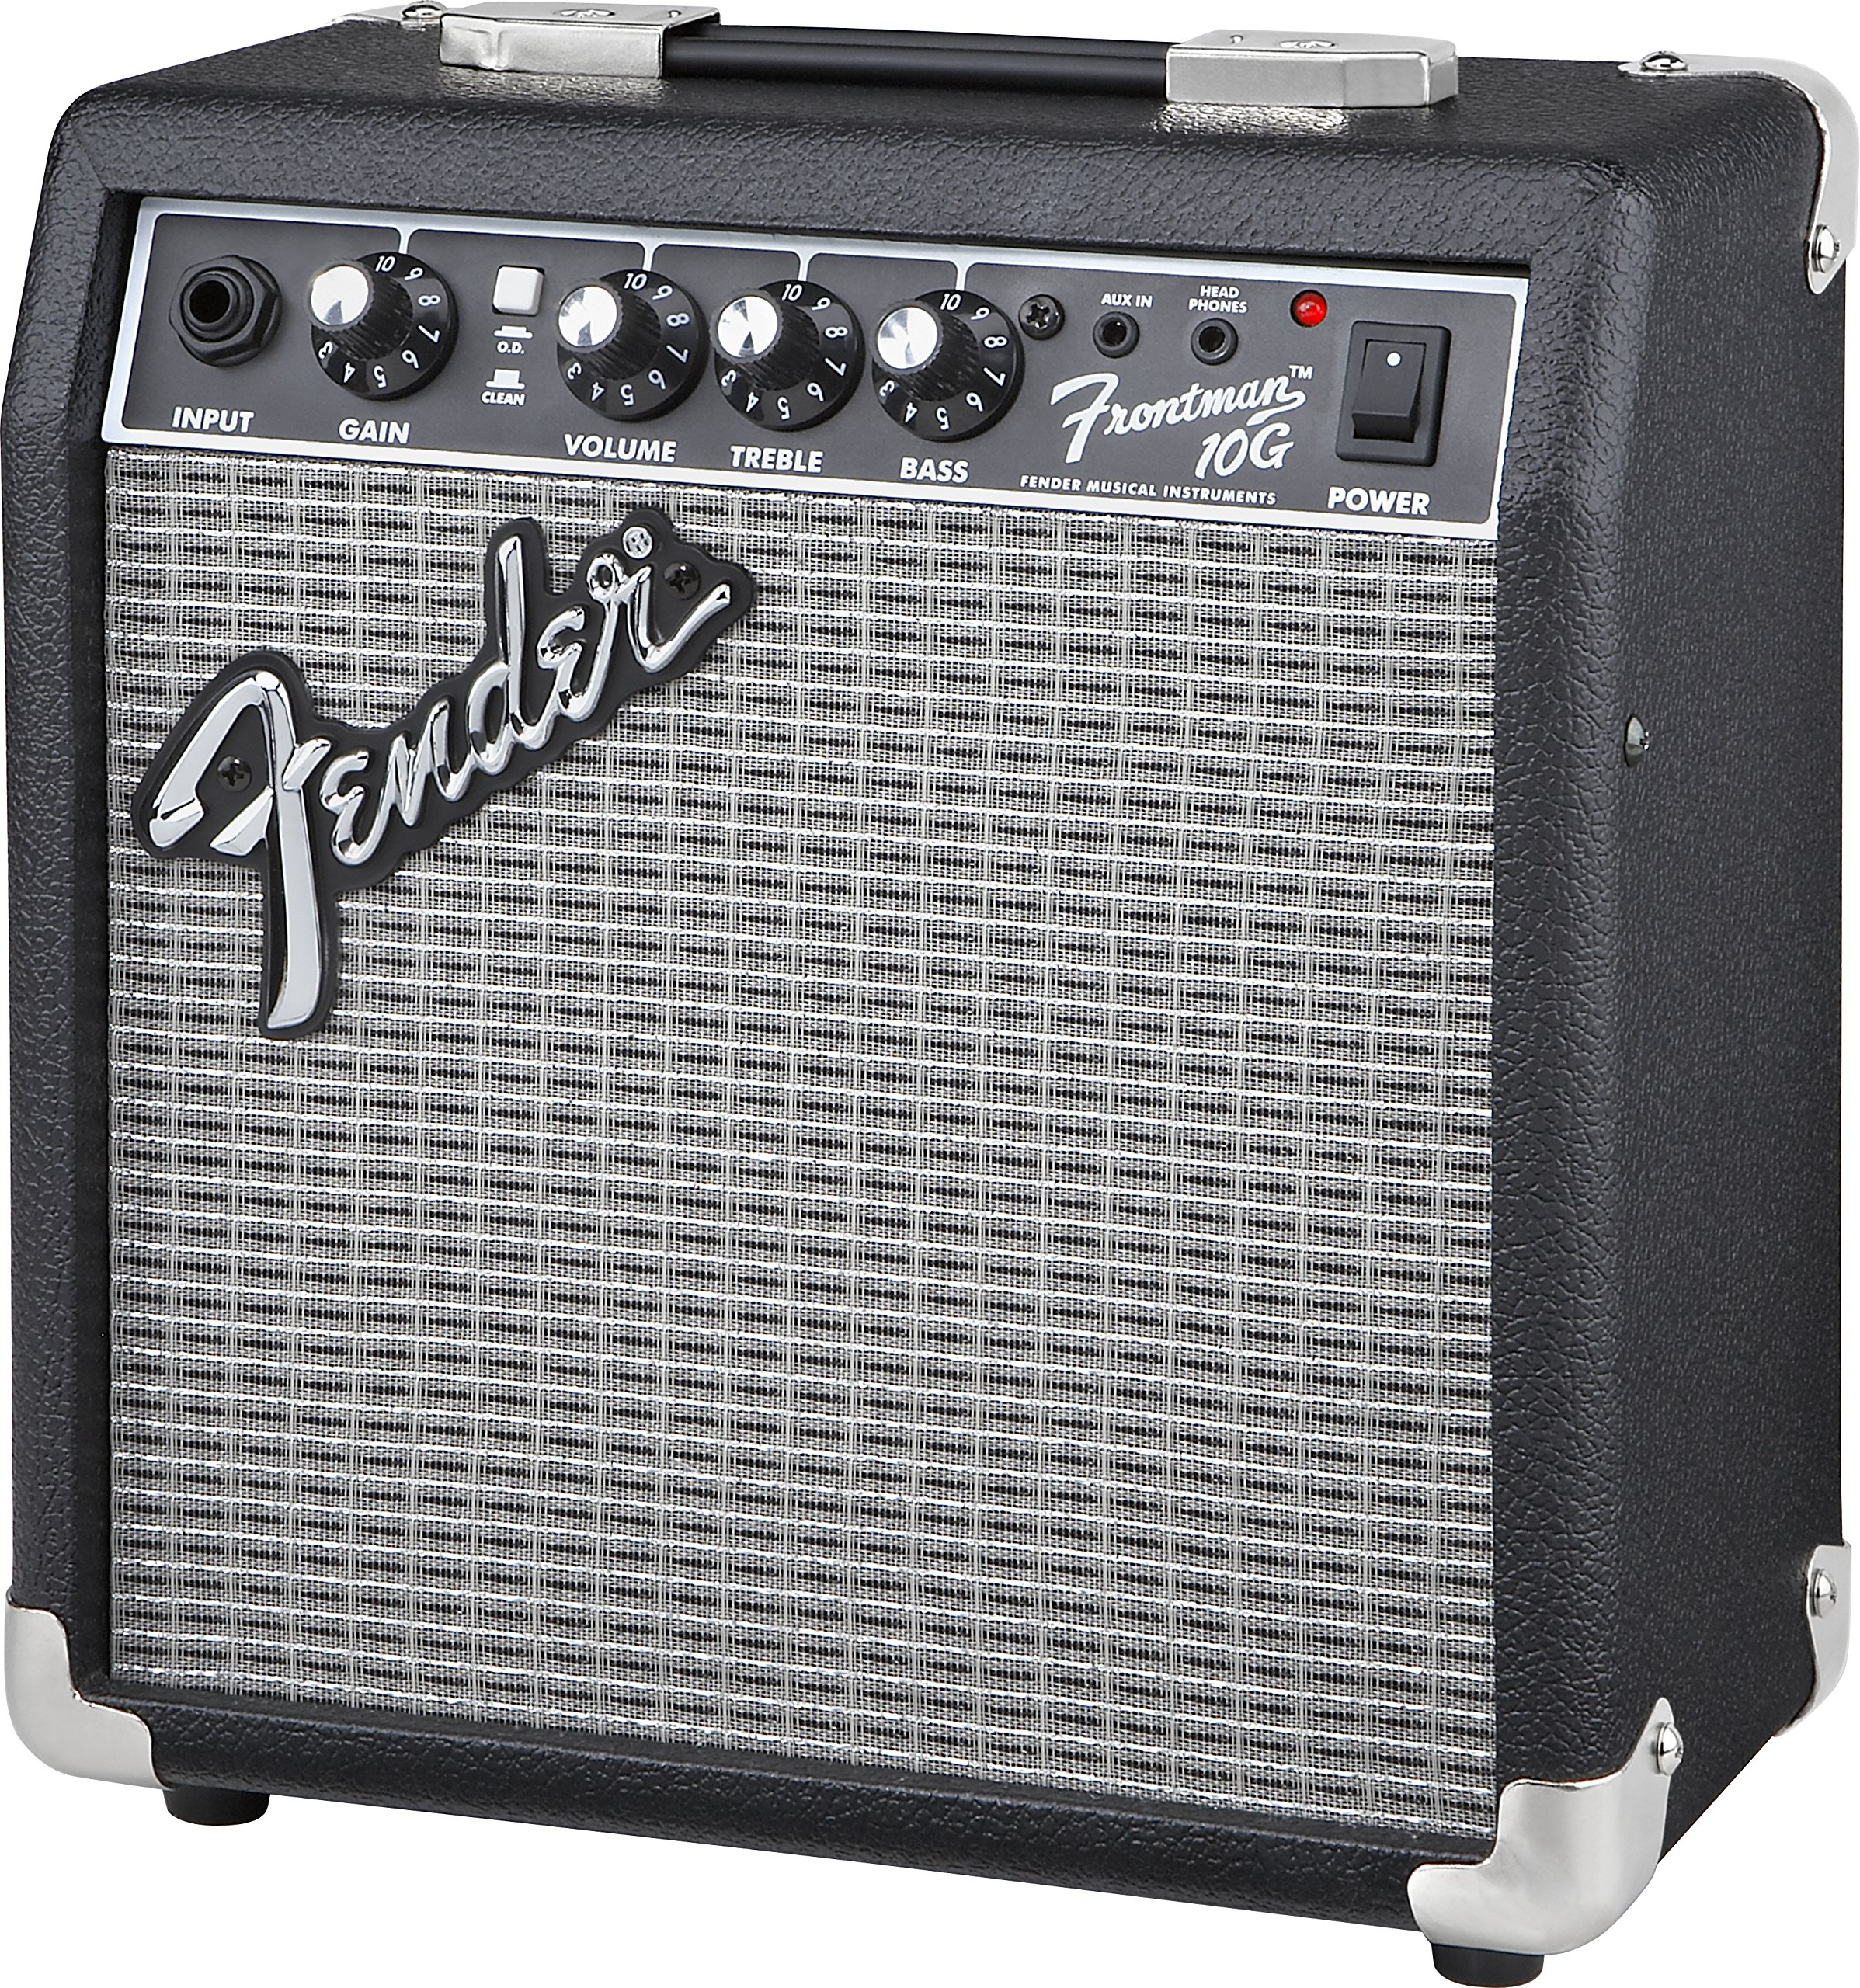 Fender Frontman 10G Electric Guitar Amplifier by Fender